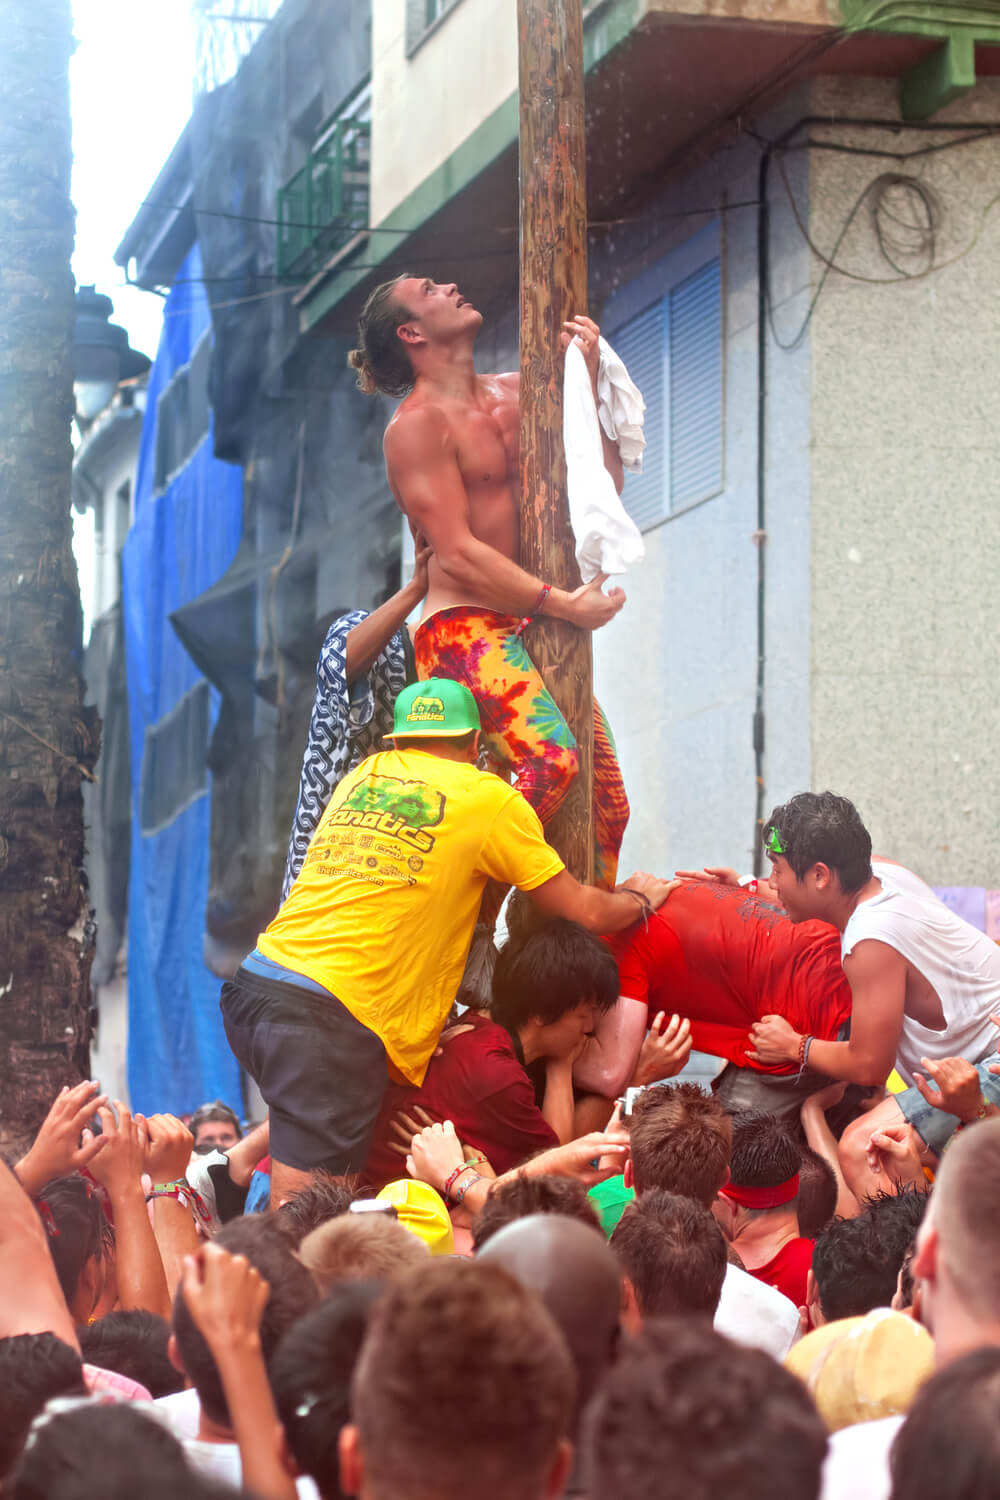 Palo Jabón at Tomatina festival in Buñol, August 28, 2013 in Spain